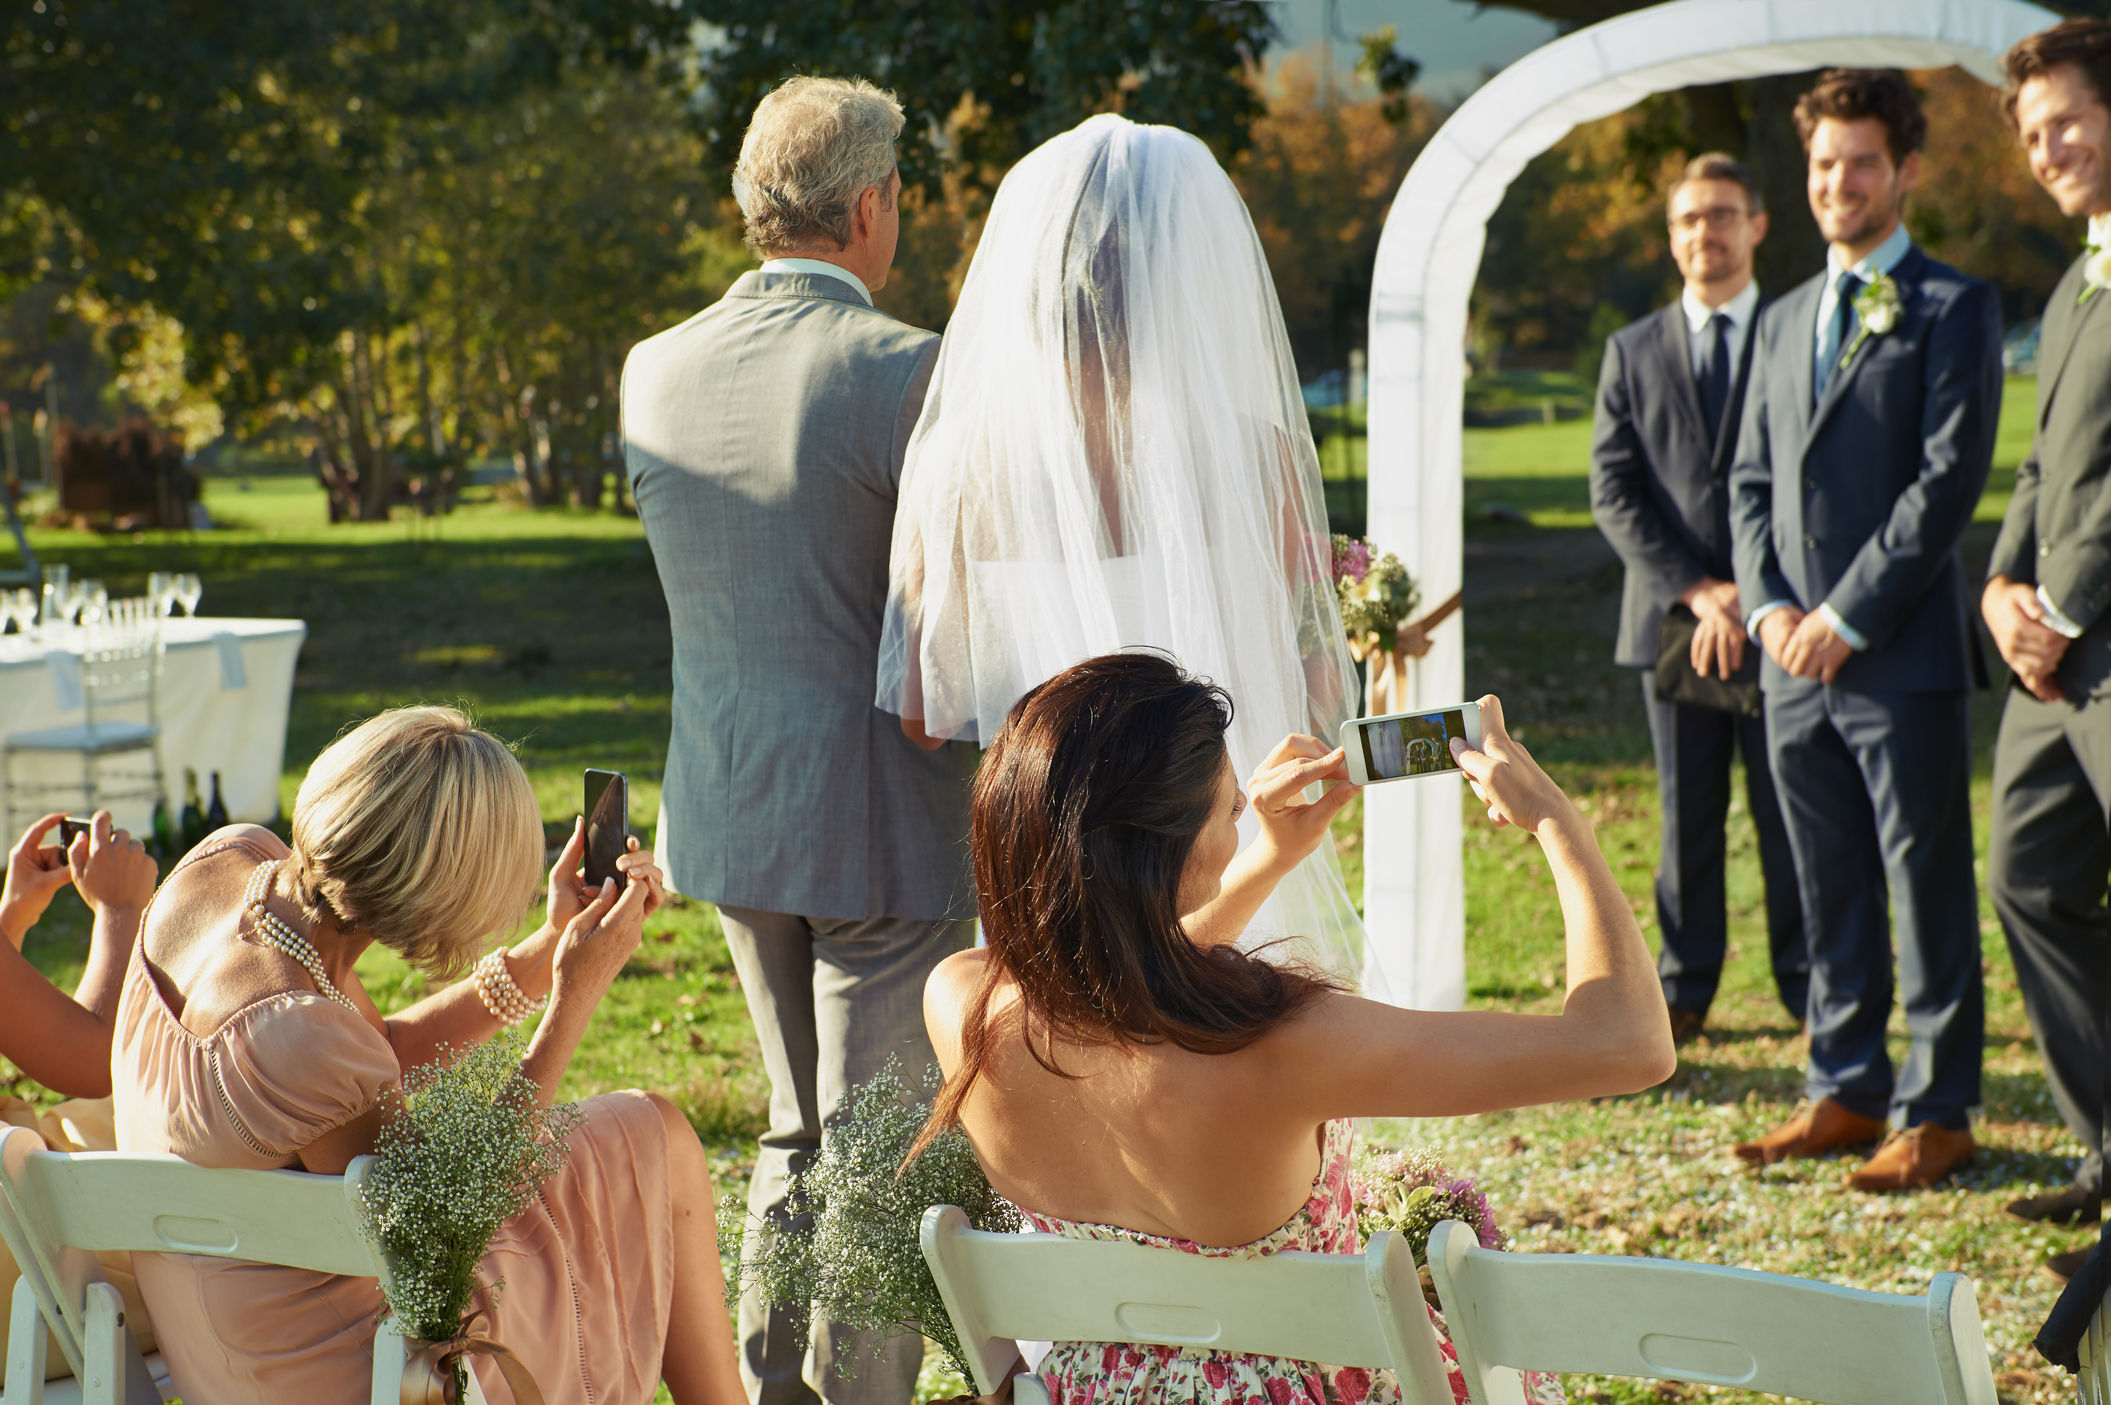 20 Incredibly Rude Things You Should Never Do at a Wedding